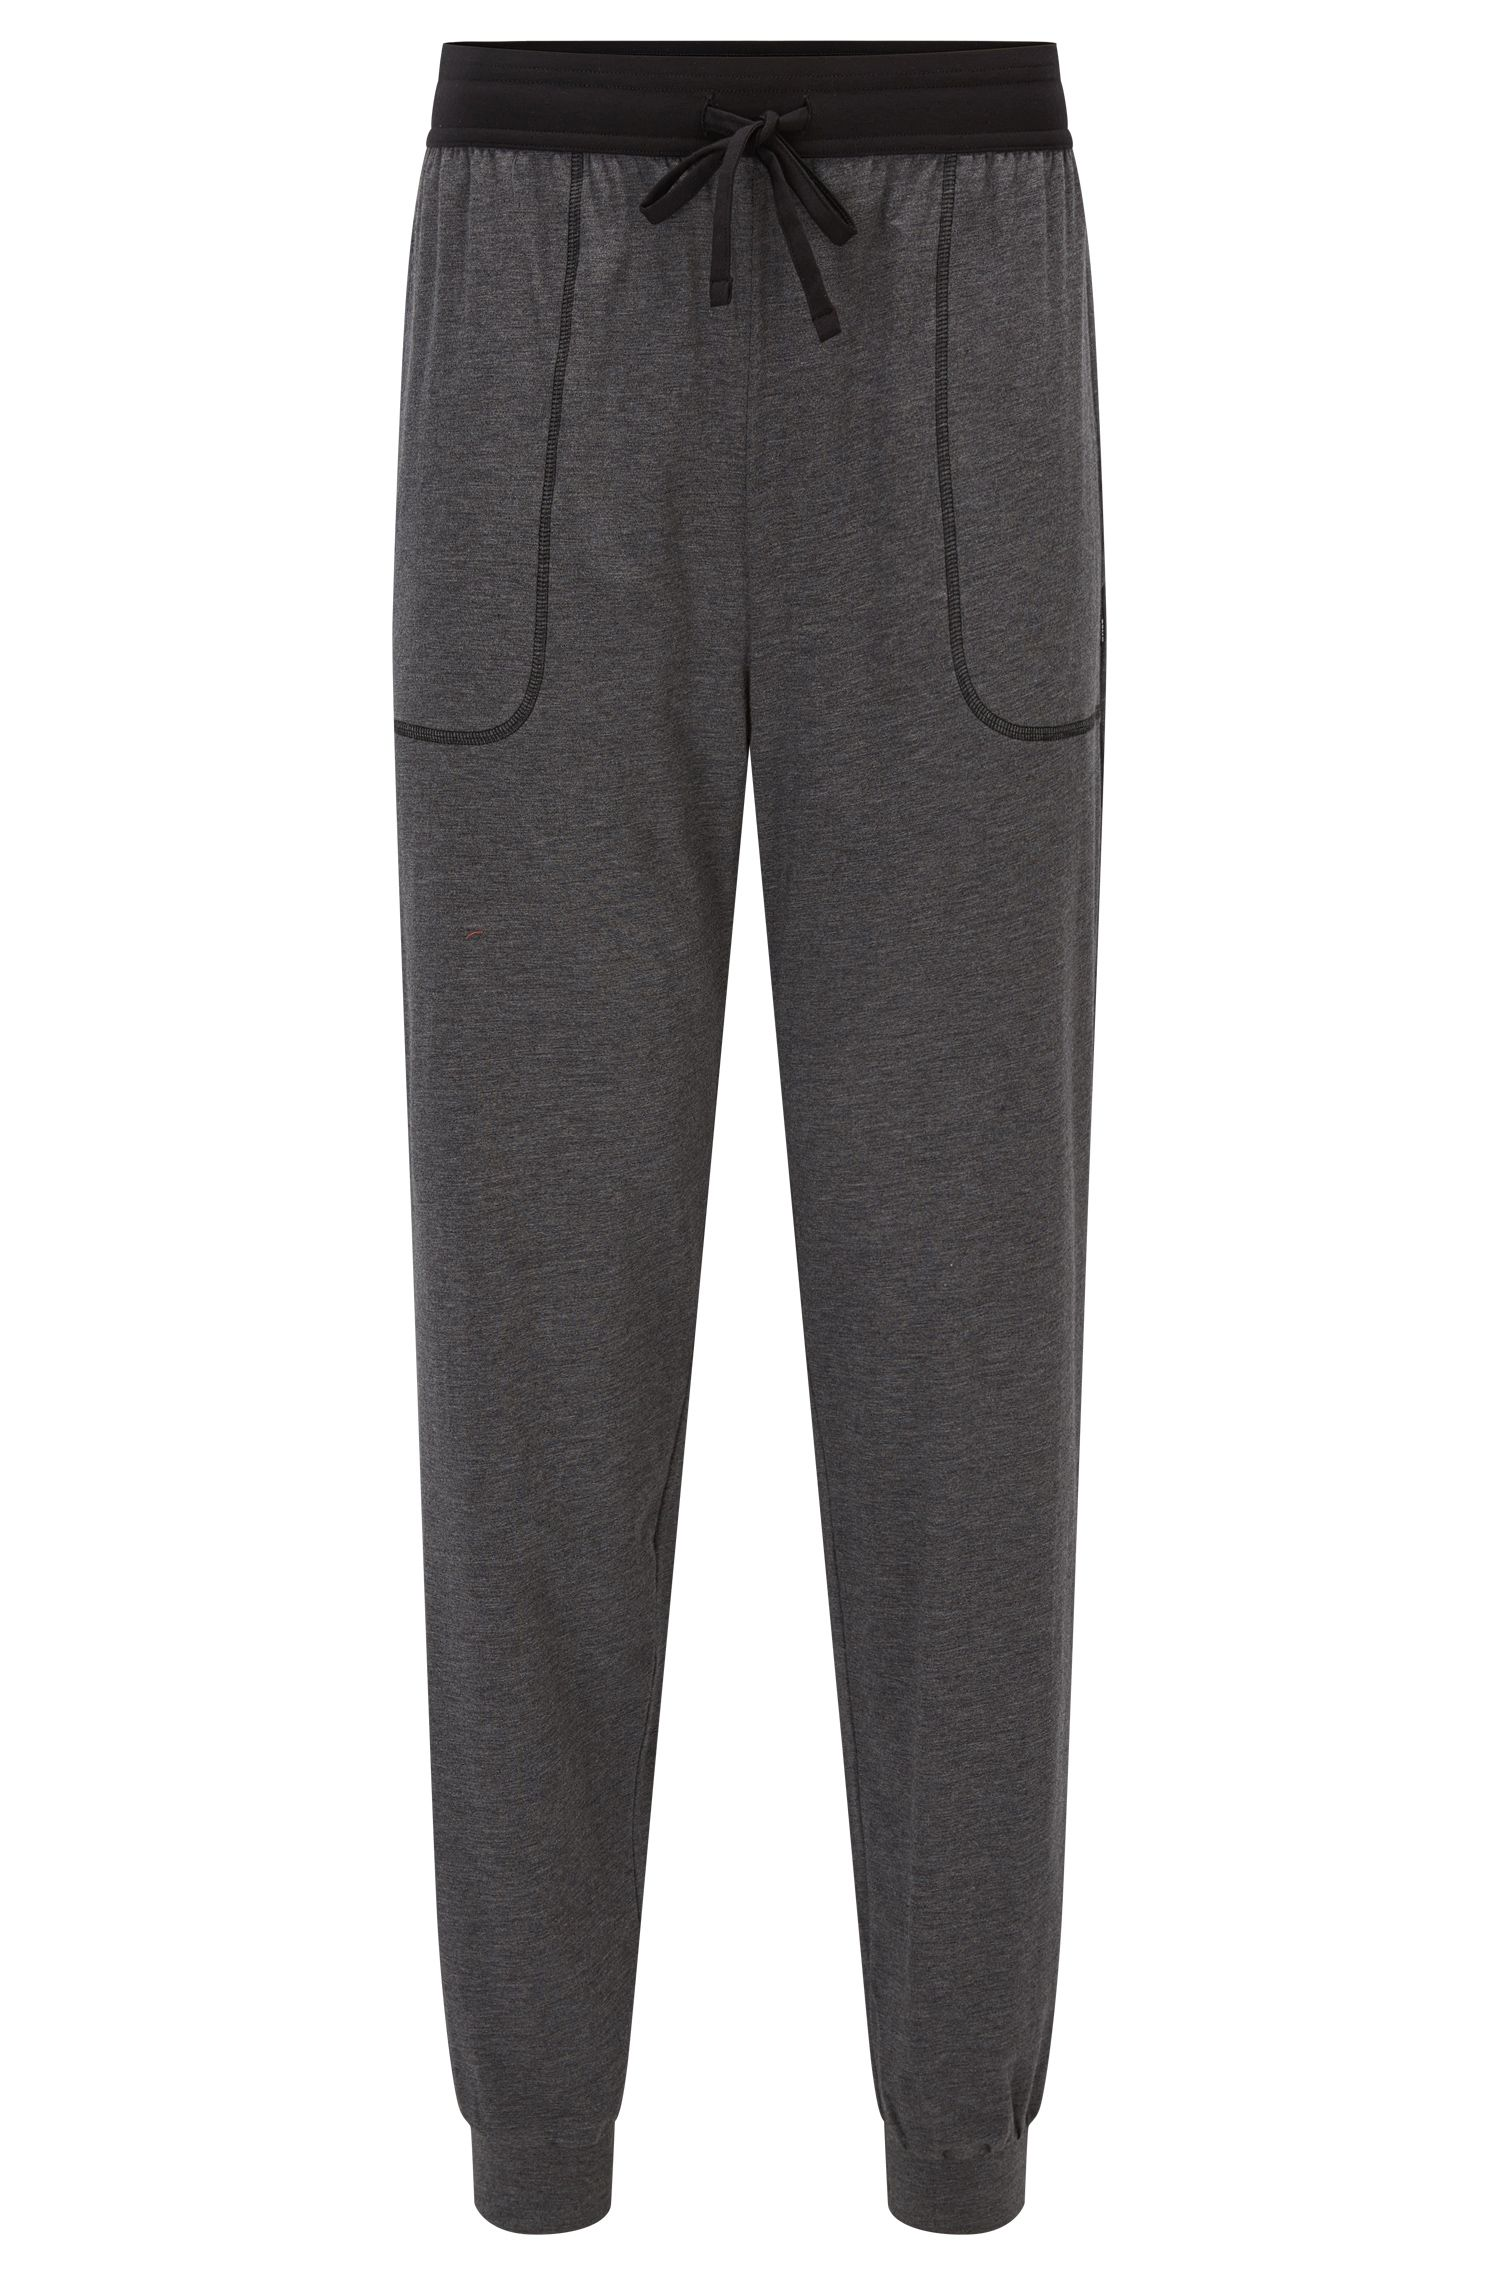 Stretch Cotton Sweat Pants | Long Pant CW Cuffs